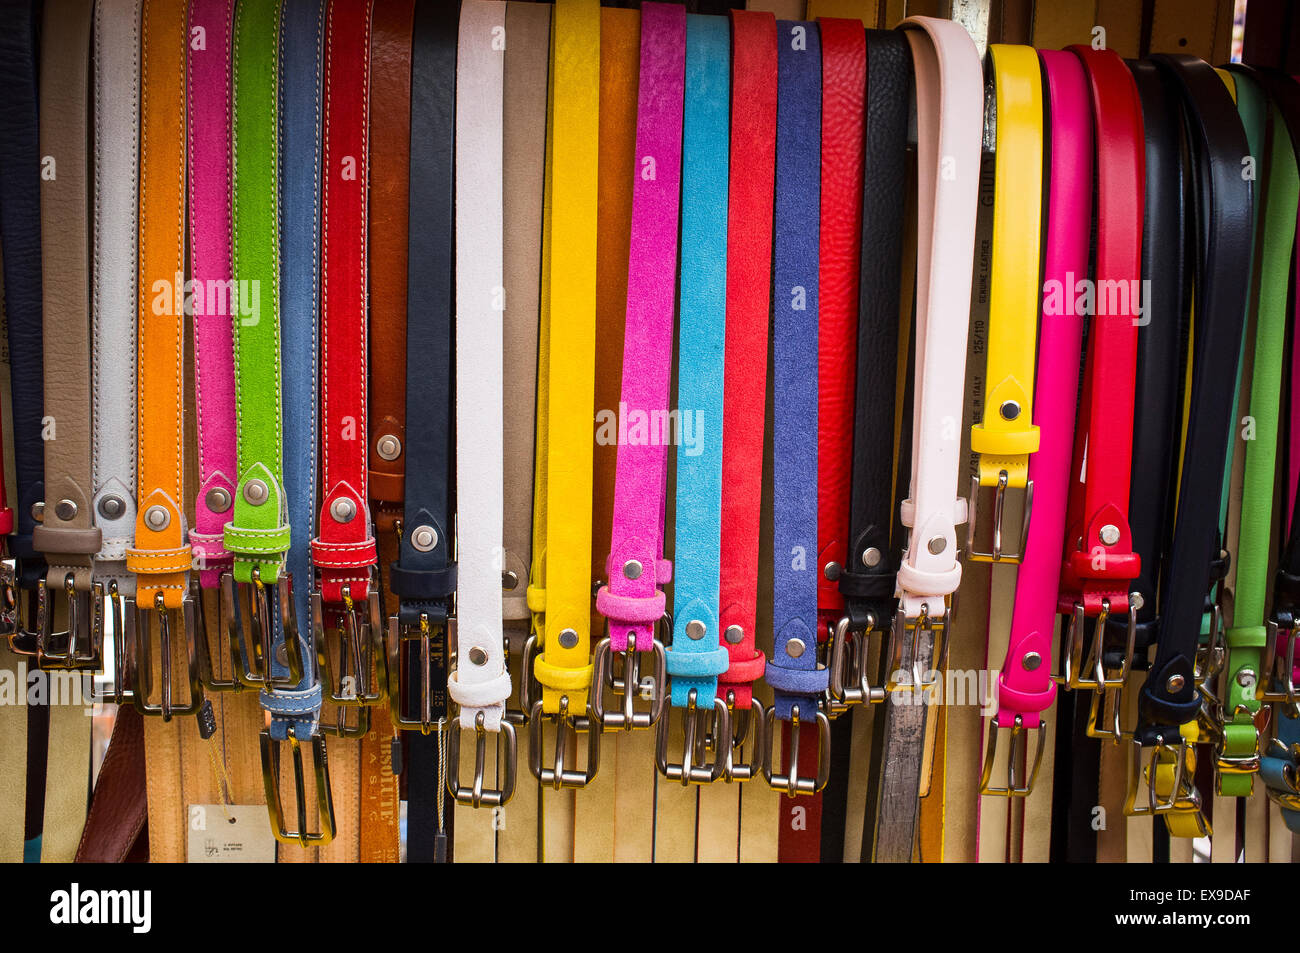 Colourful leather belts hanging up outside a shop in Italy. - Stock Image